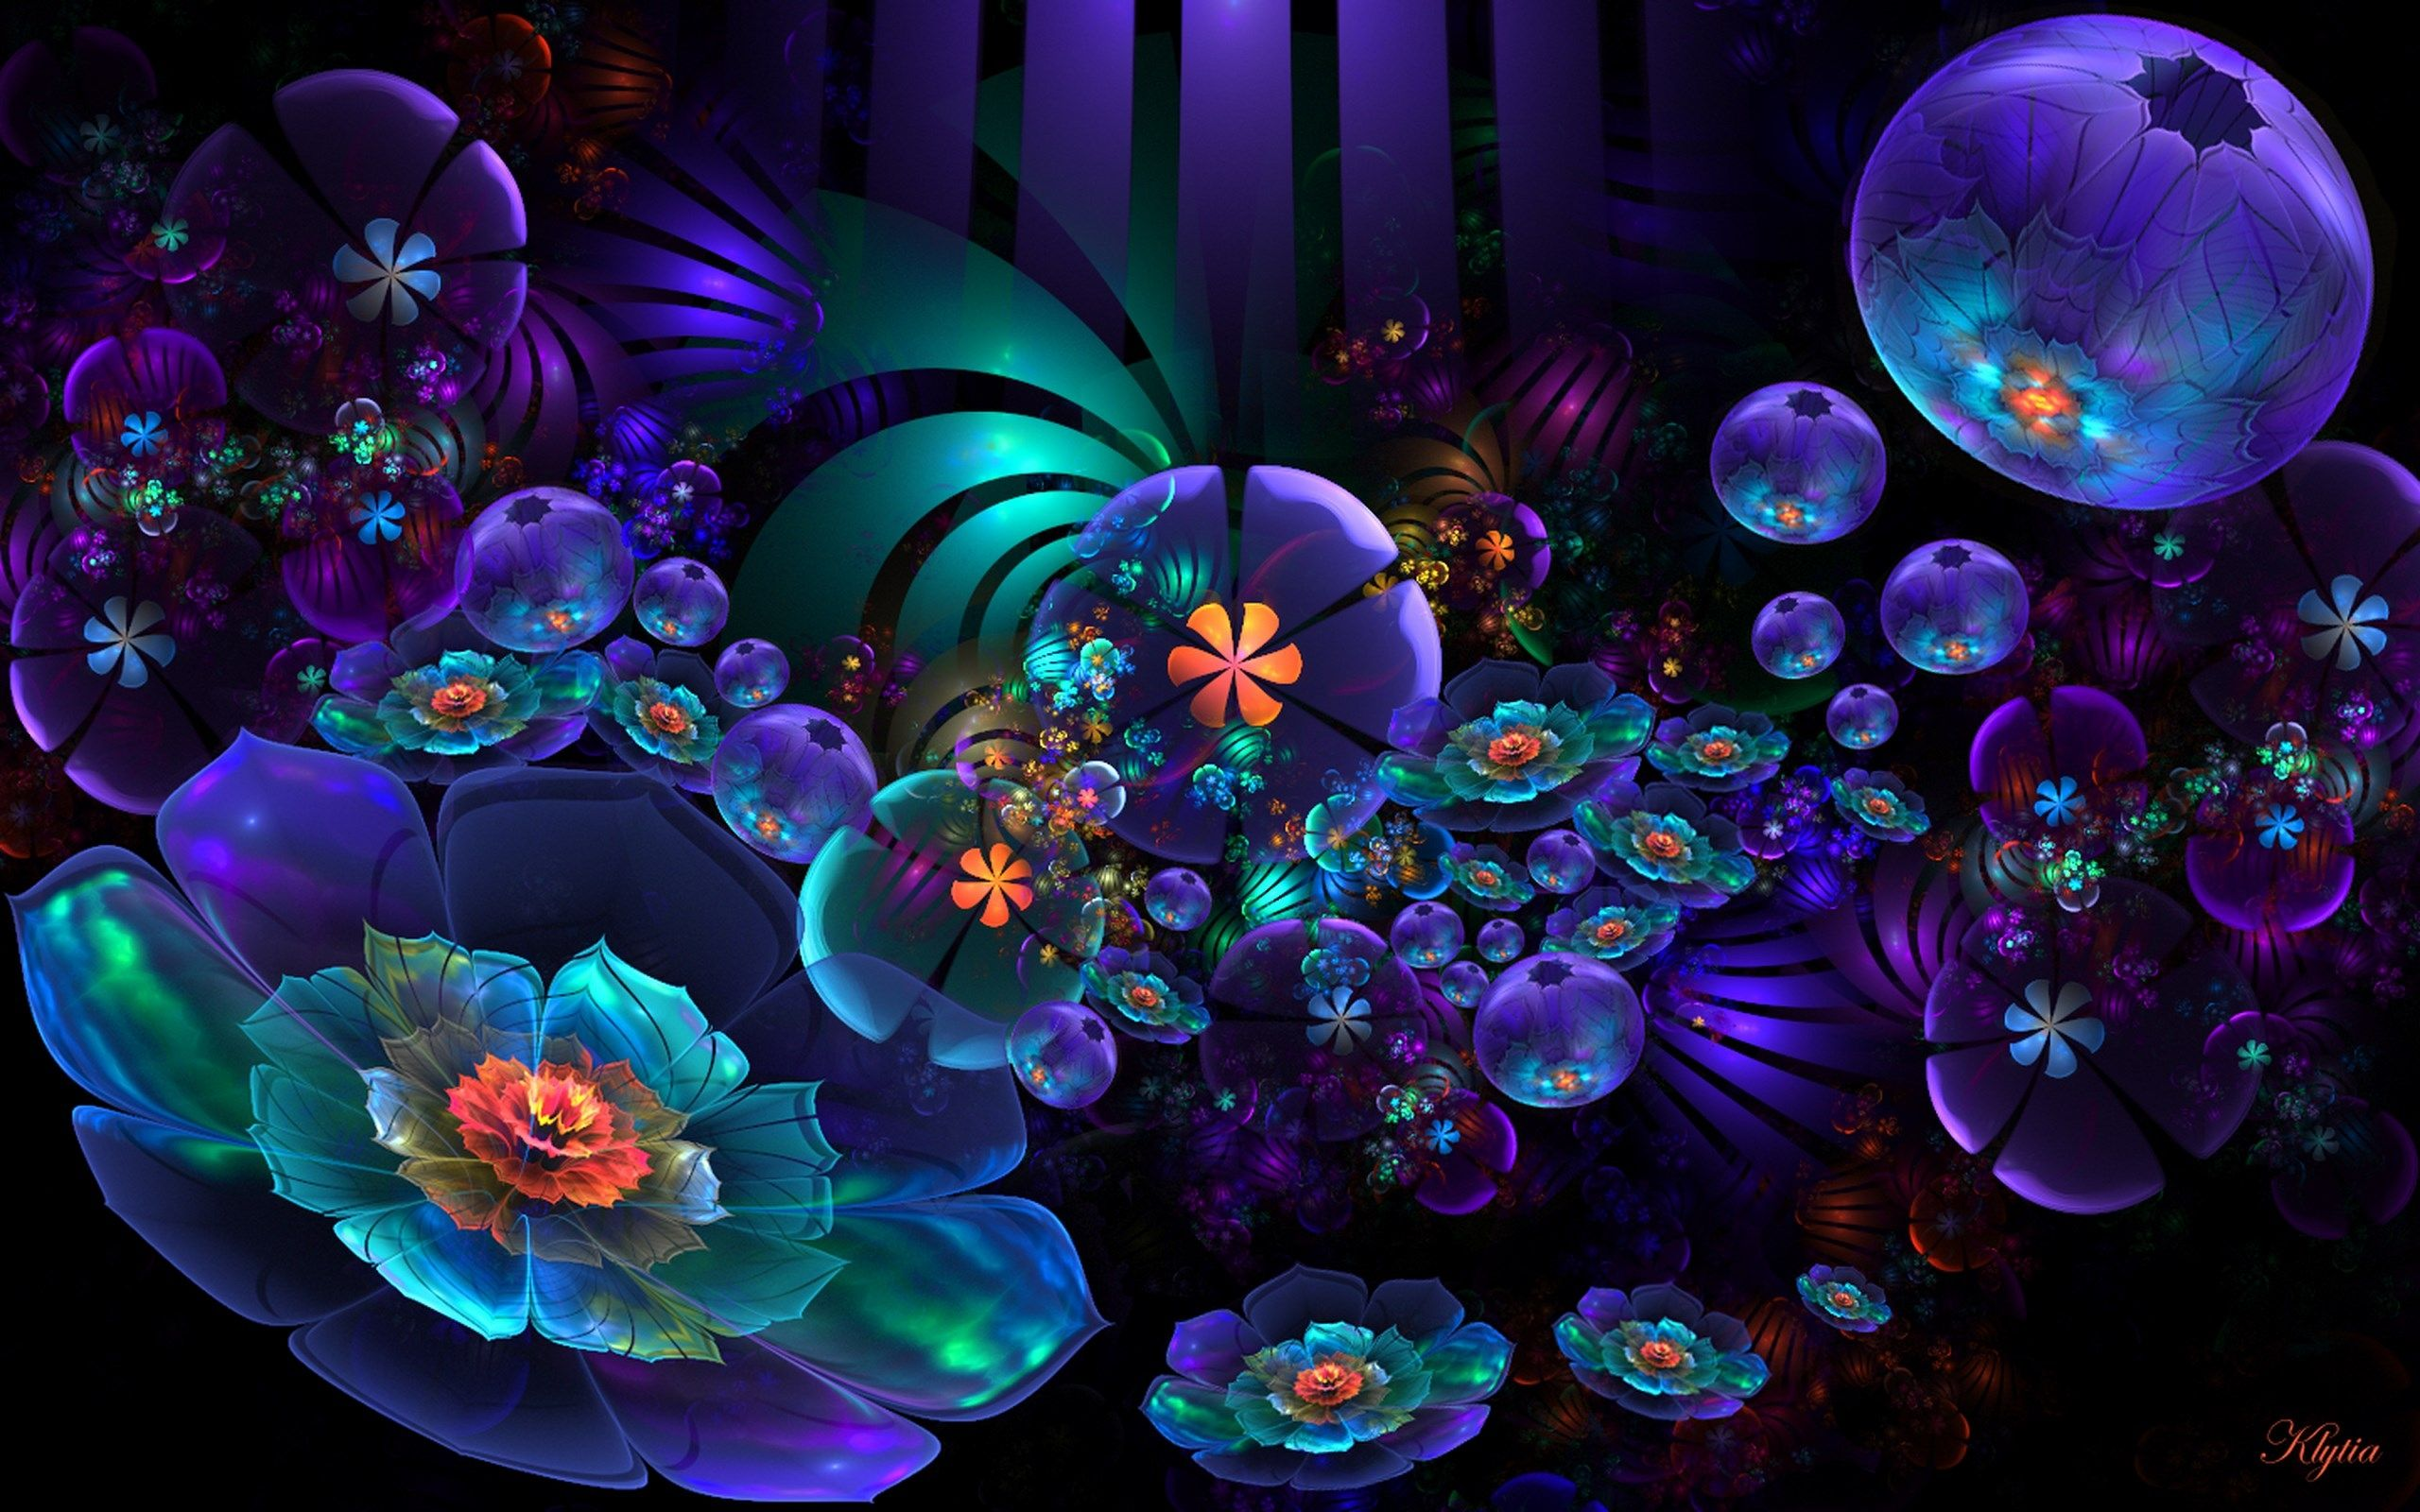 View Download Comment And Rate This 2560x1600 Neon Flower Abstract Wallpaper Wallpaper Abyss Psychedelic Art Abstract Neon Flowers